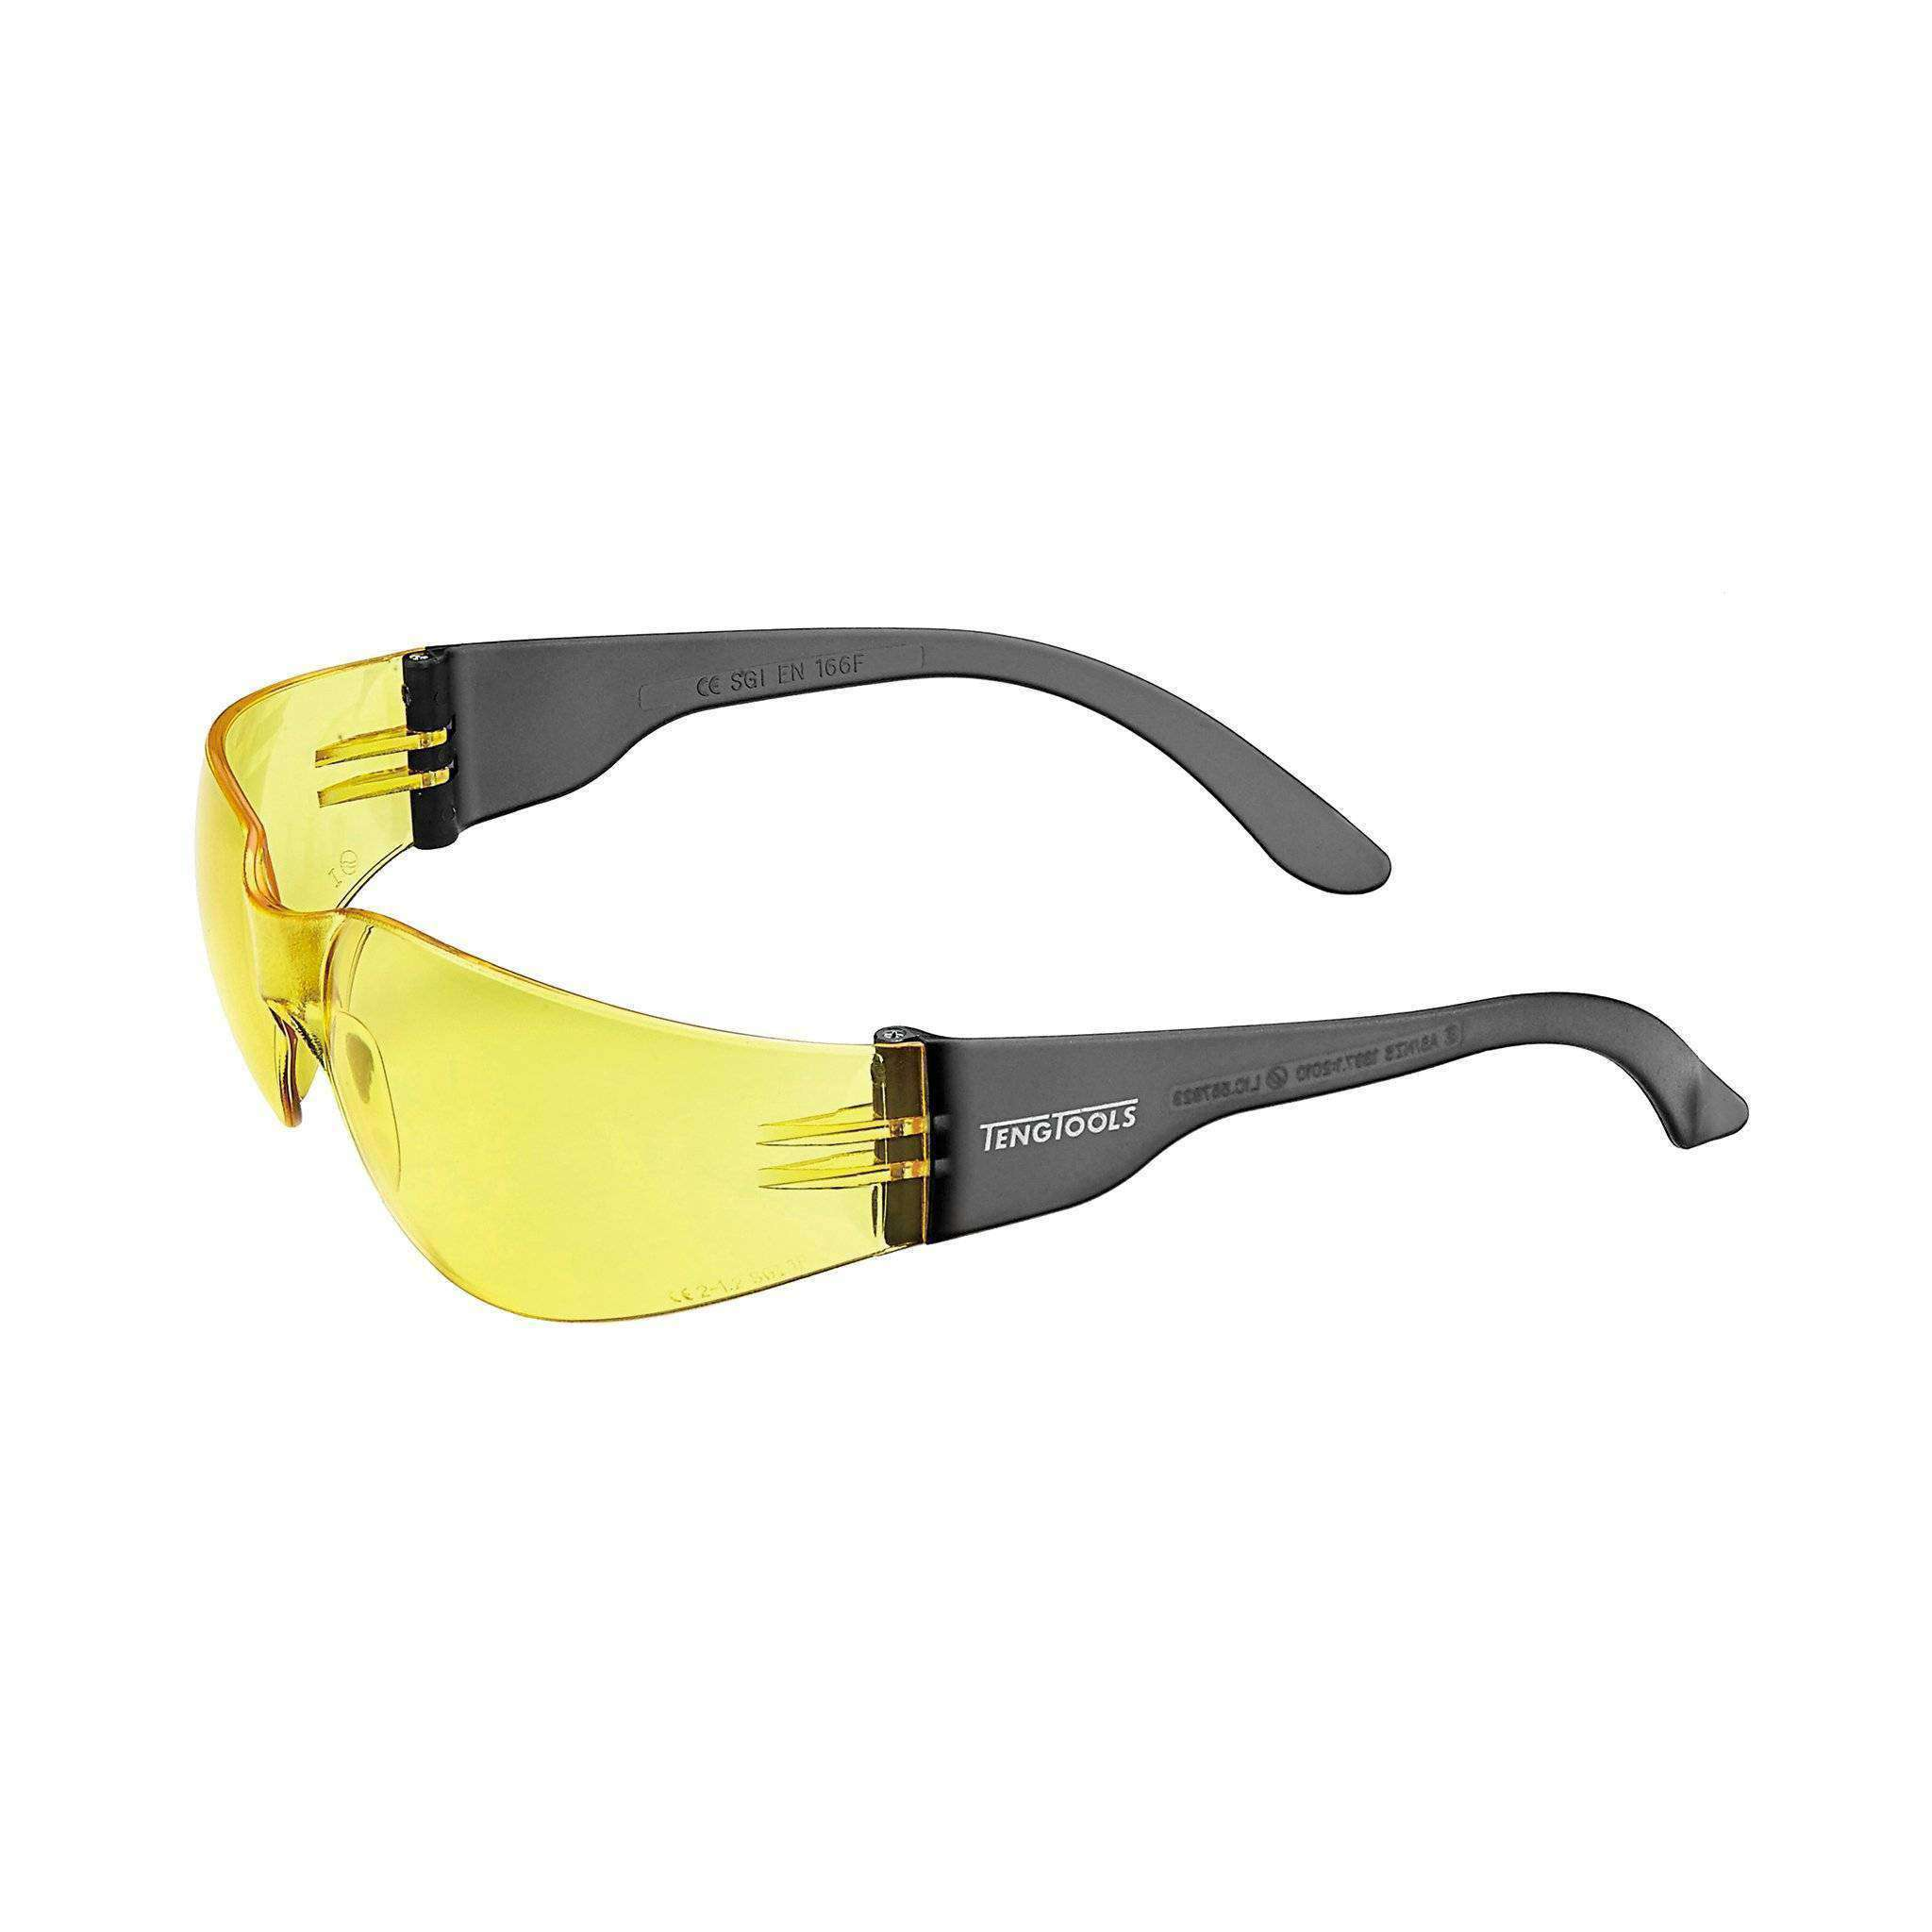 SAFETY GLASSES YELLOW LENS ANTI FOG / SCRATCH RESISTANT - Teng Tools USA